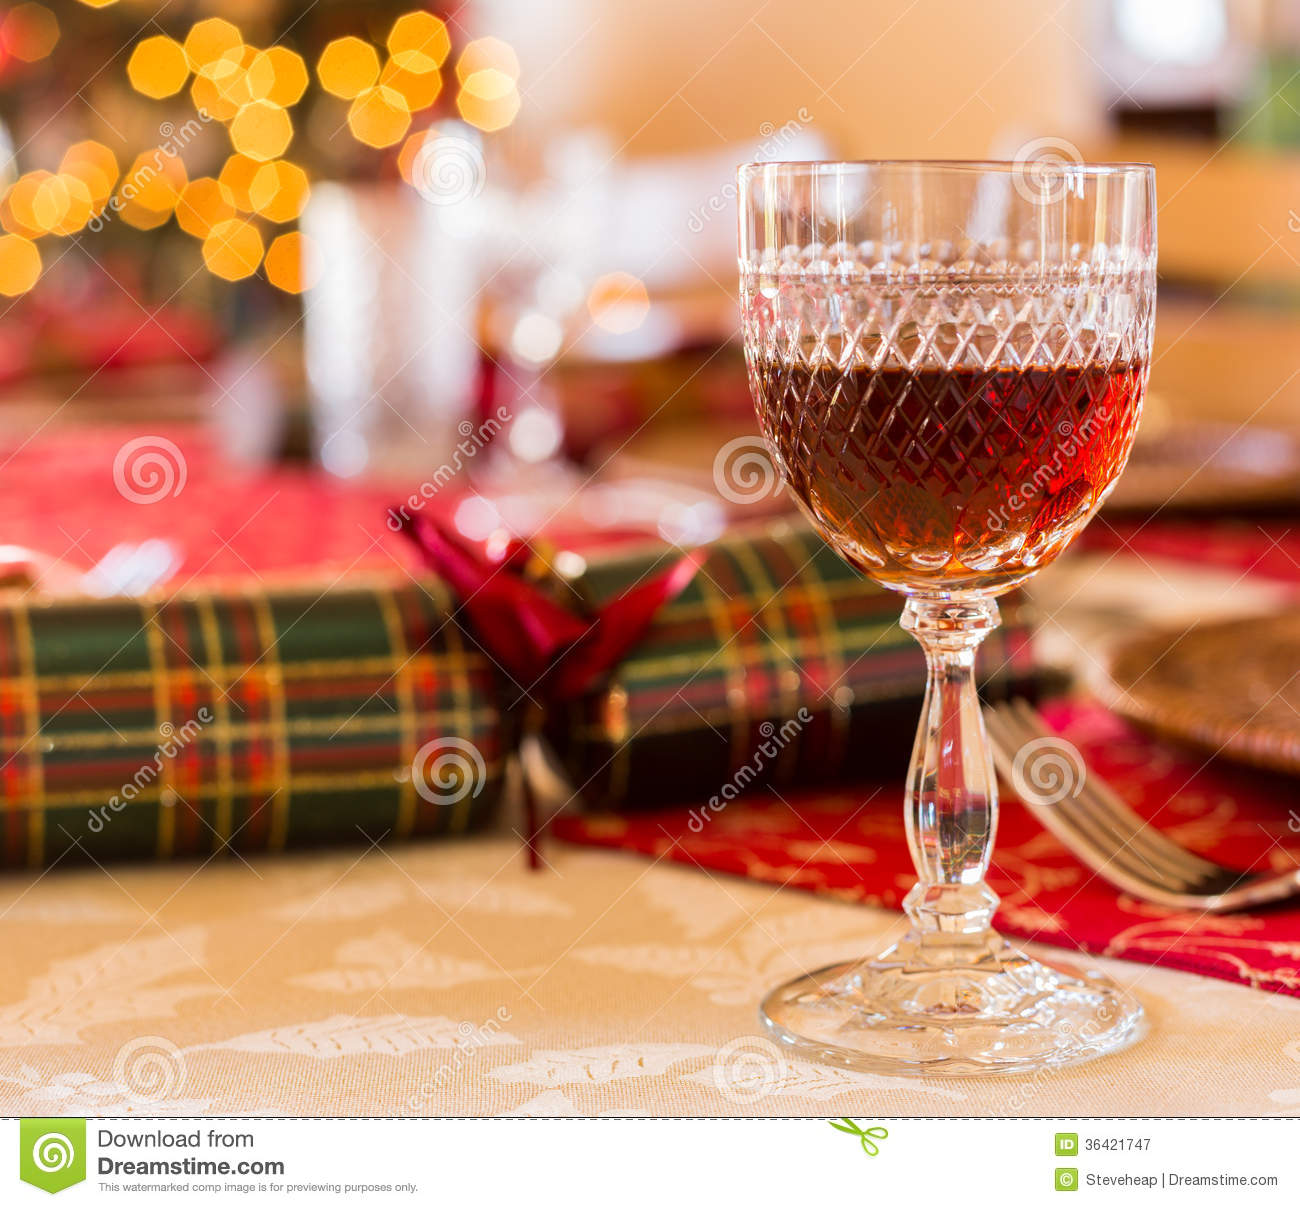 English Christmas Table With Sherry Glass Royalty Free  : english christmas table sherry glass cut goblet set lunch crackers decorated tree background 36421747 from www.dreamstime.com size 1300 x 1207 jpeg 197kB